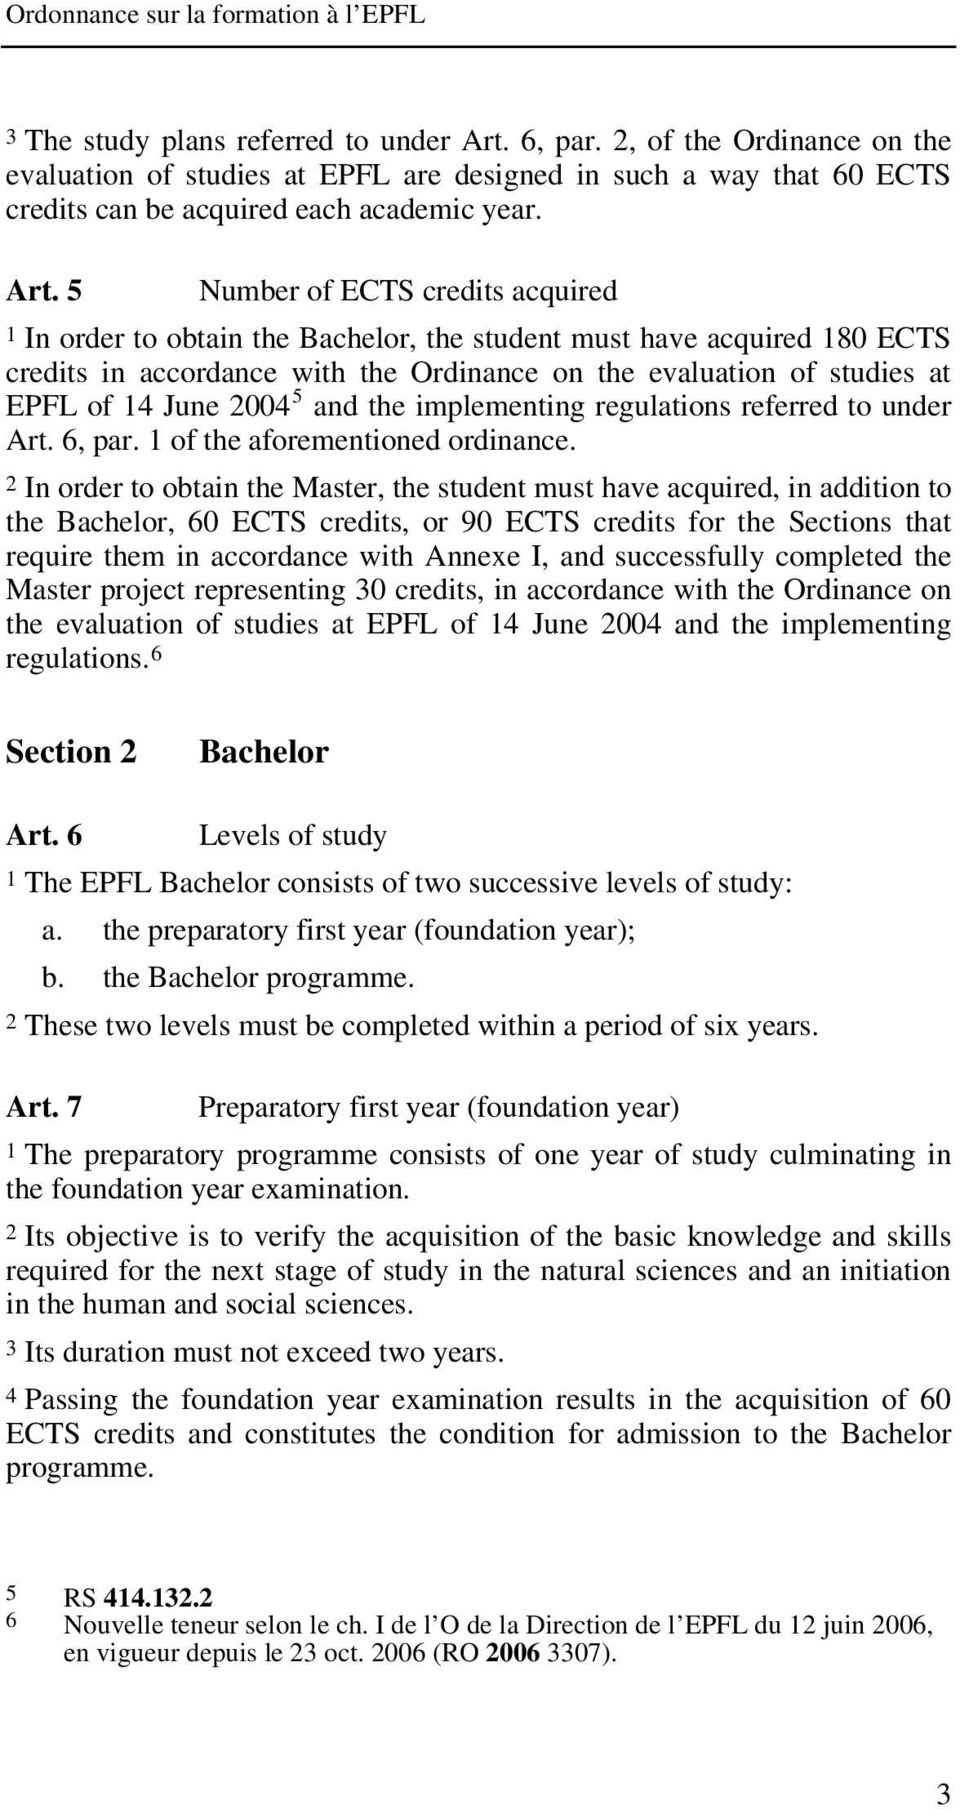 5 Number of ECTS credits acquired 1 In order to obtain the Bachelor, the student must have acquired 180 ECTS credits in accordance with the Ordinance on the evaluation of studies at EPFL of 14 June